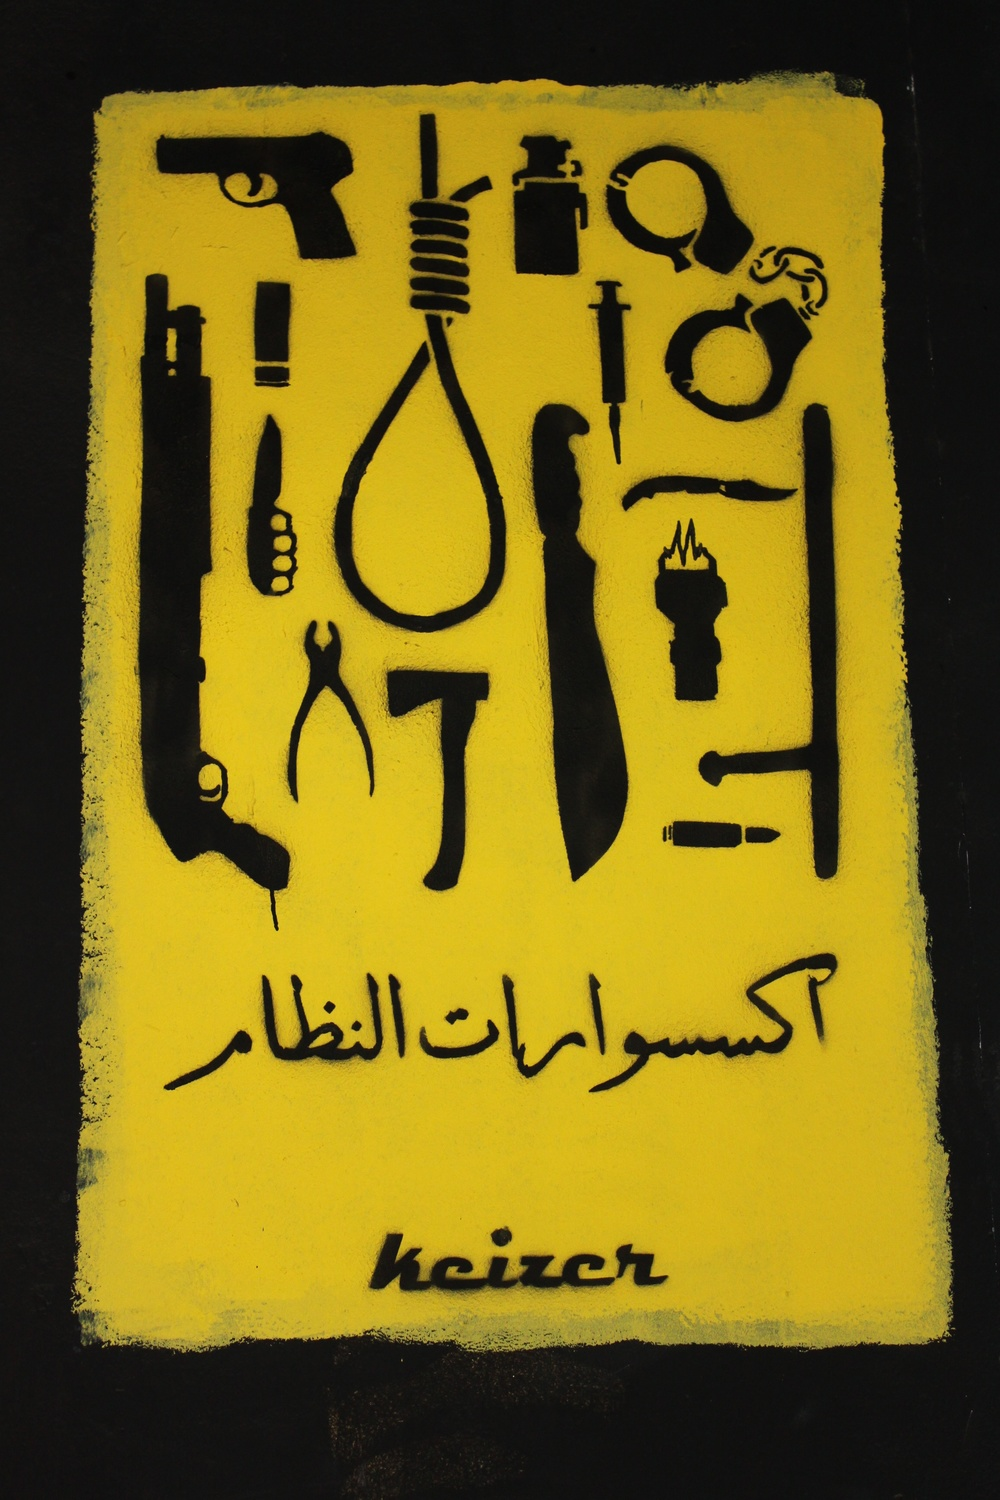 """The Accessories of the regime"""